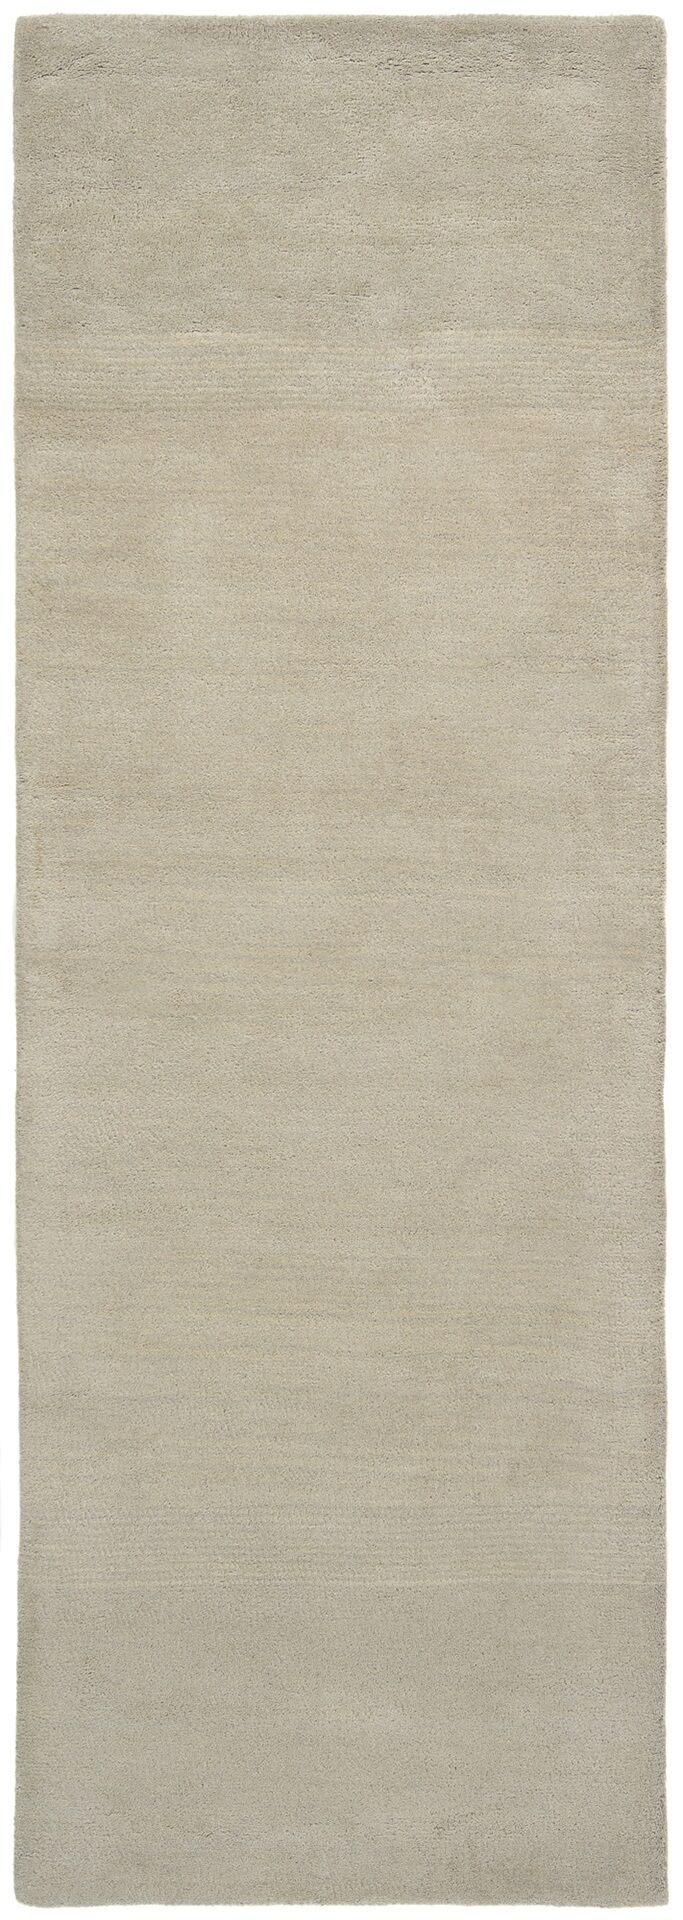 Claudius Hand Tufted Rug Rug Size: 5' x 7'6